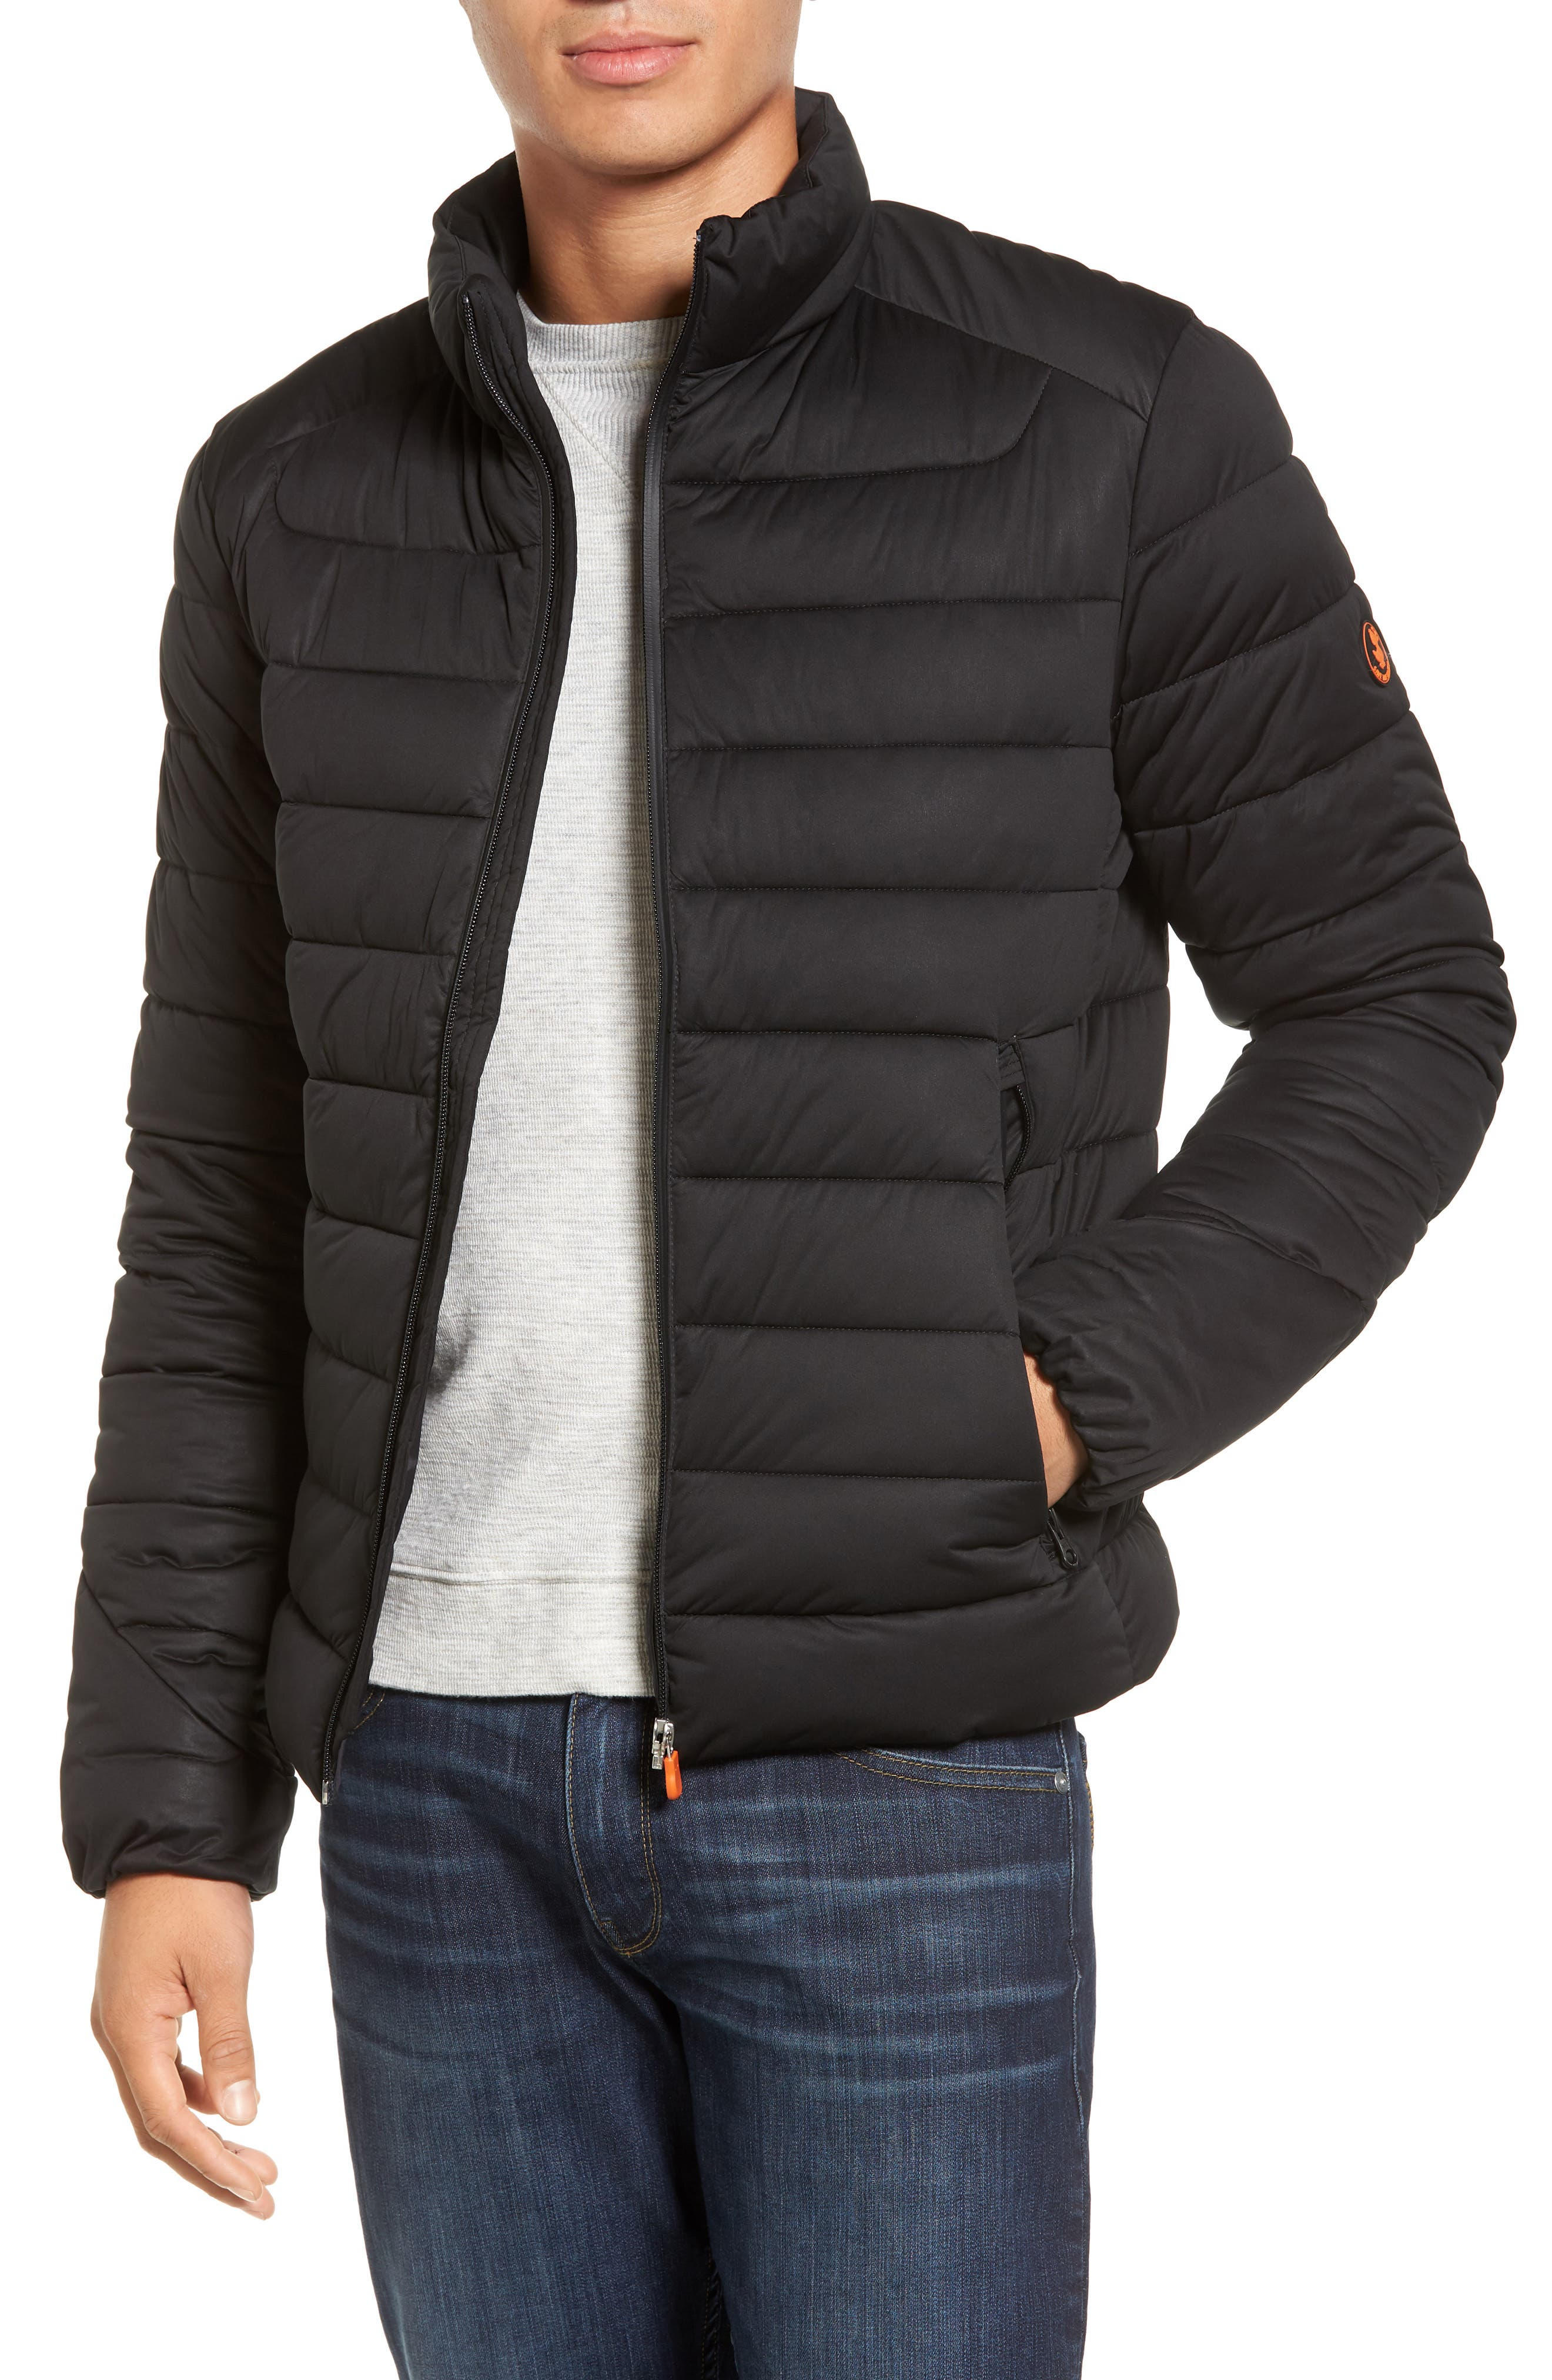 Water Resistant Puffer Jacket,                         Main,                         color, Black